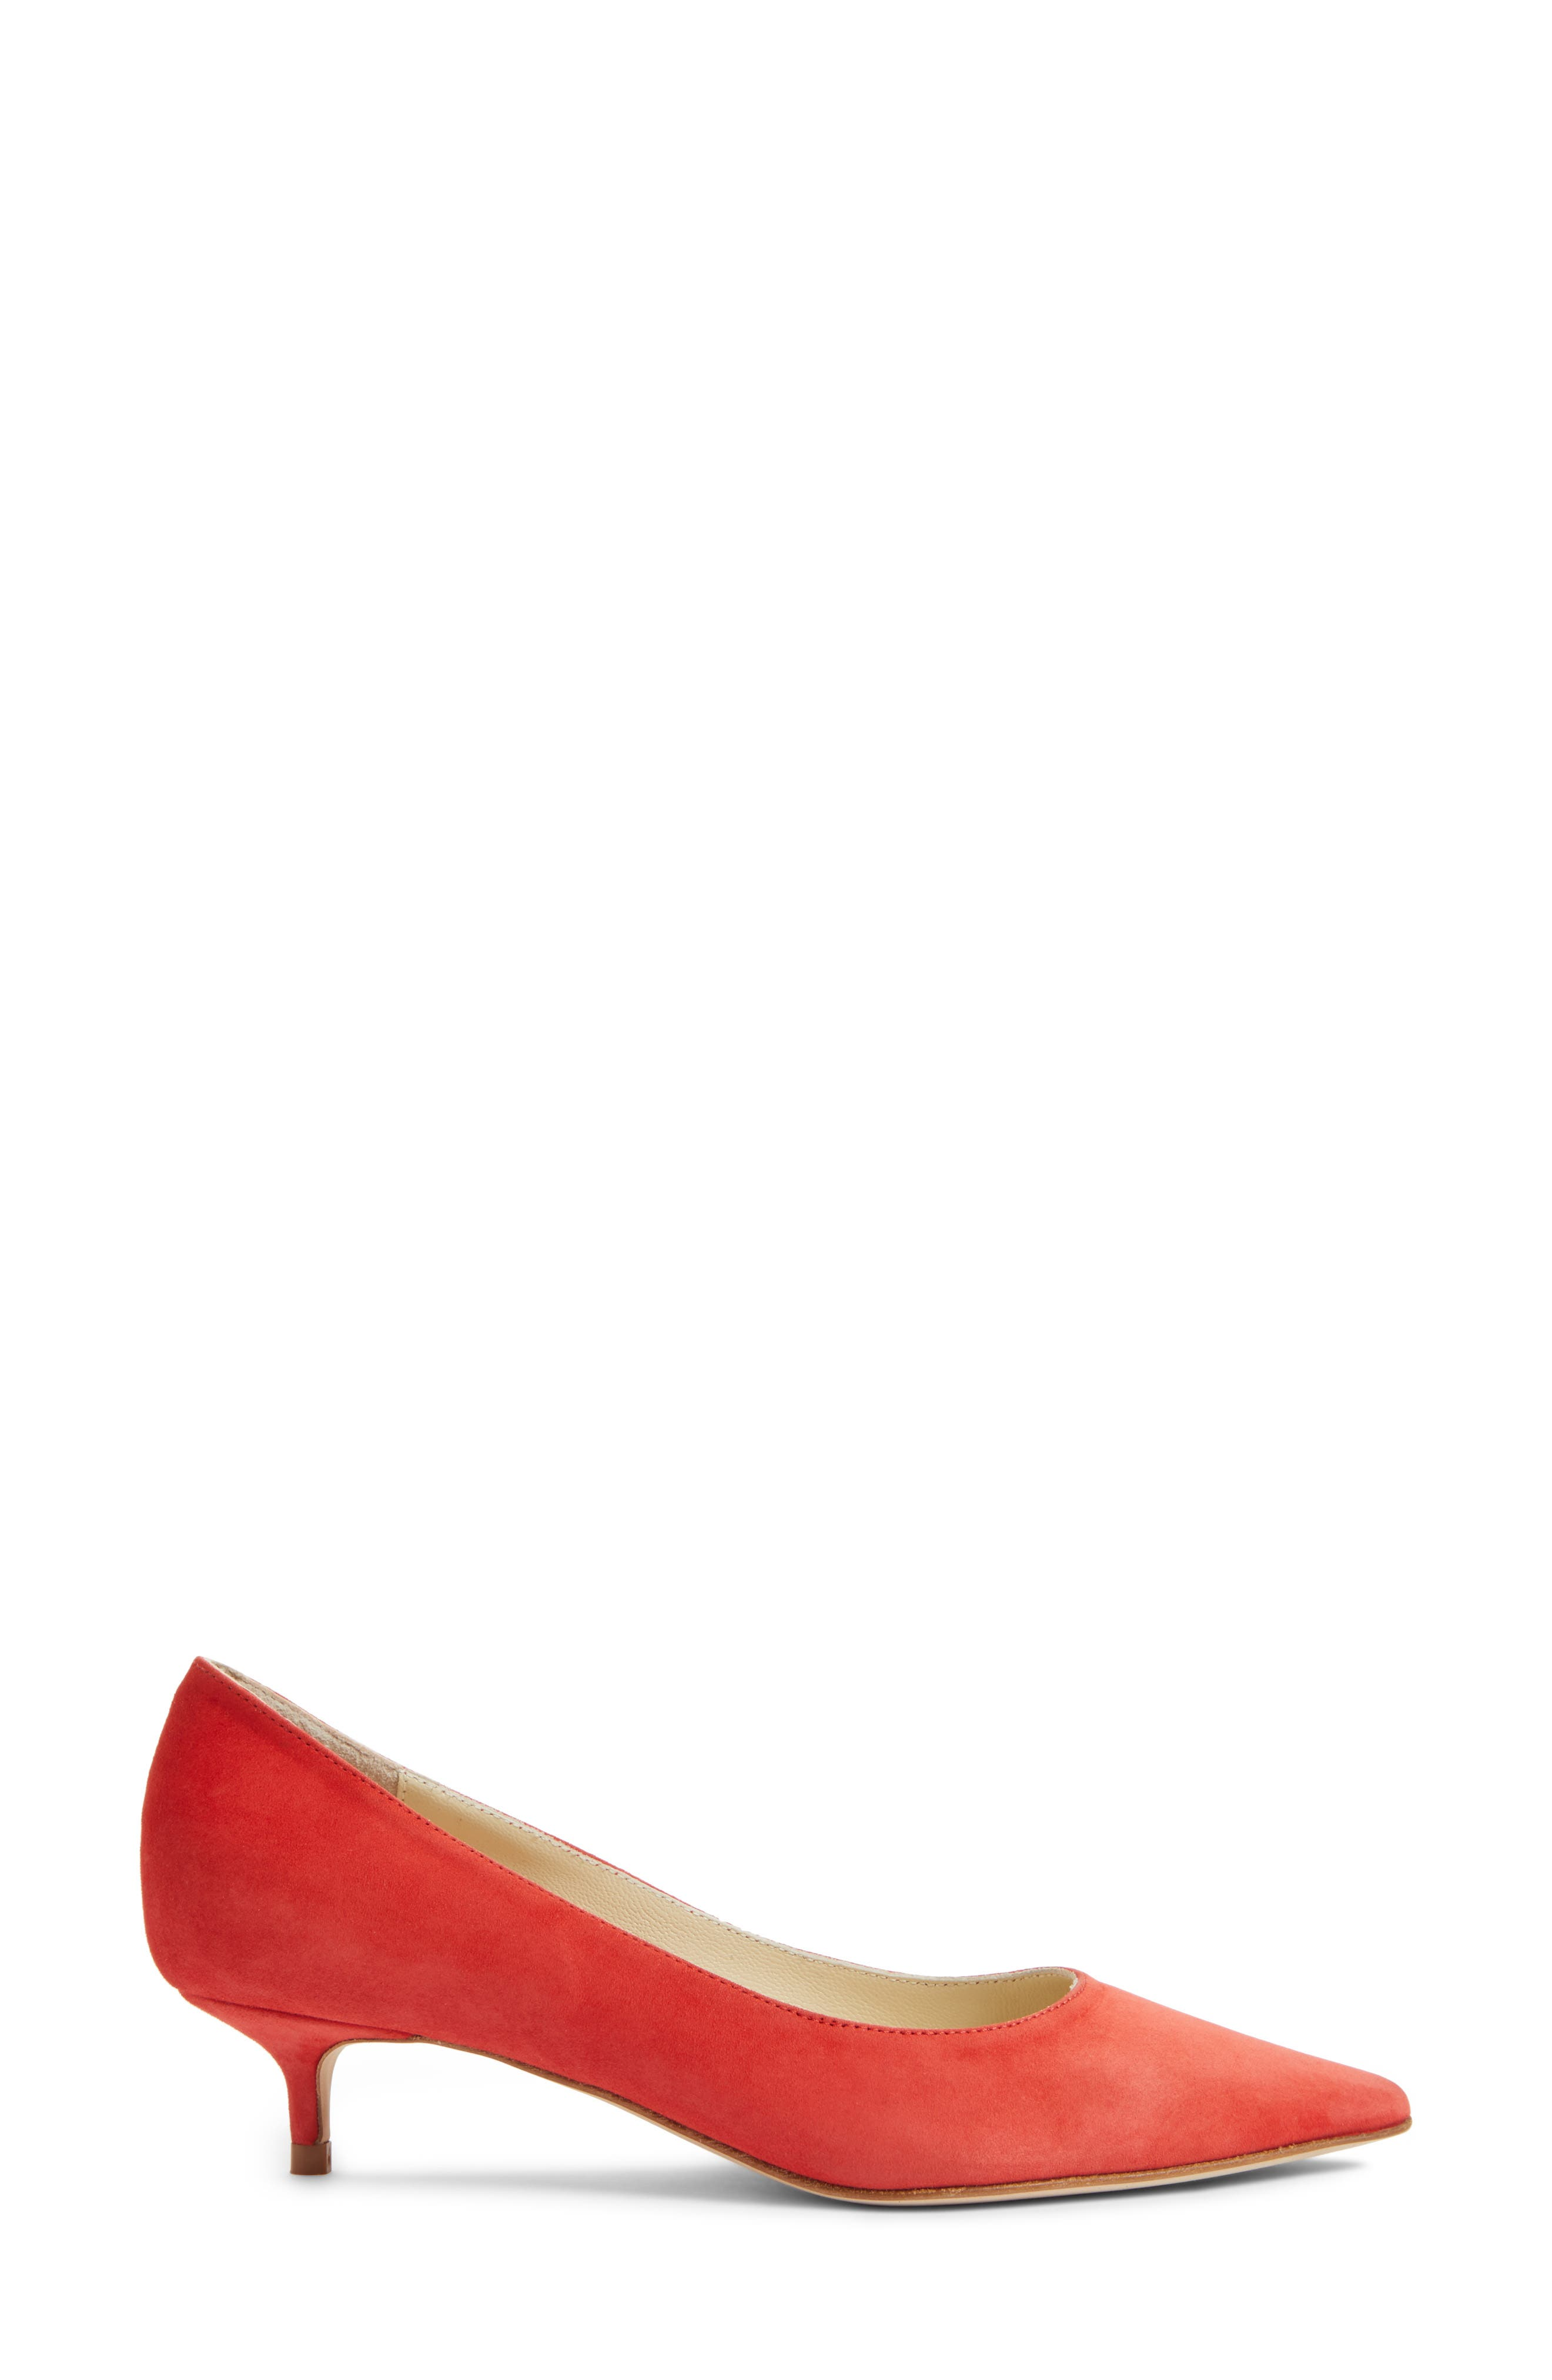 Butter Born Pointy Toe Pump,                             Alternate thumbnail 21, color,